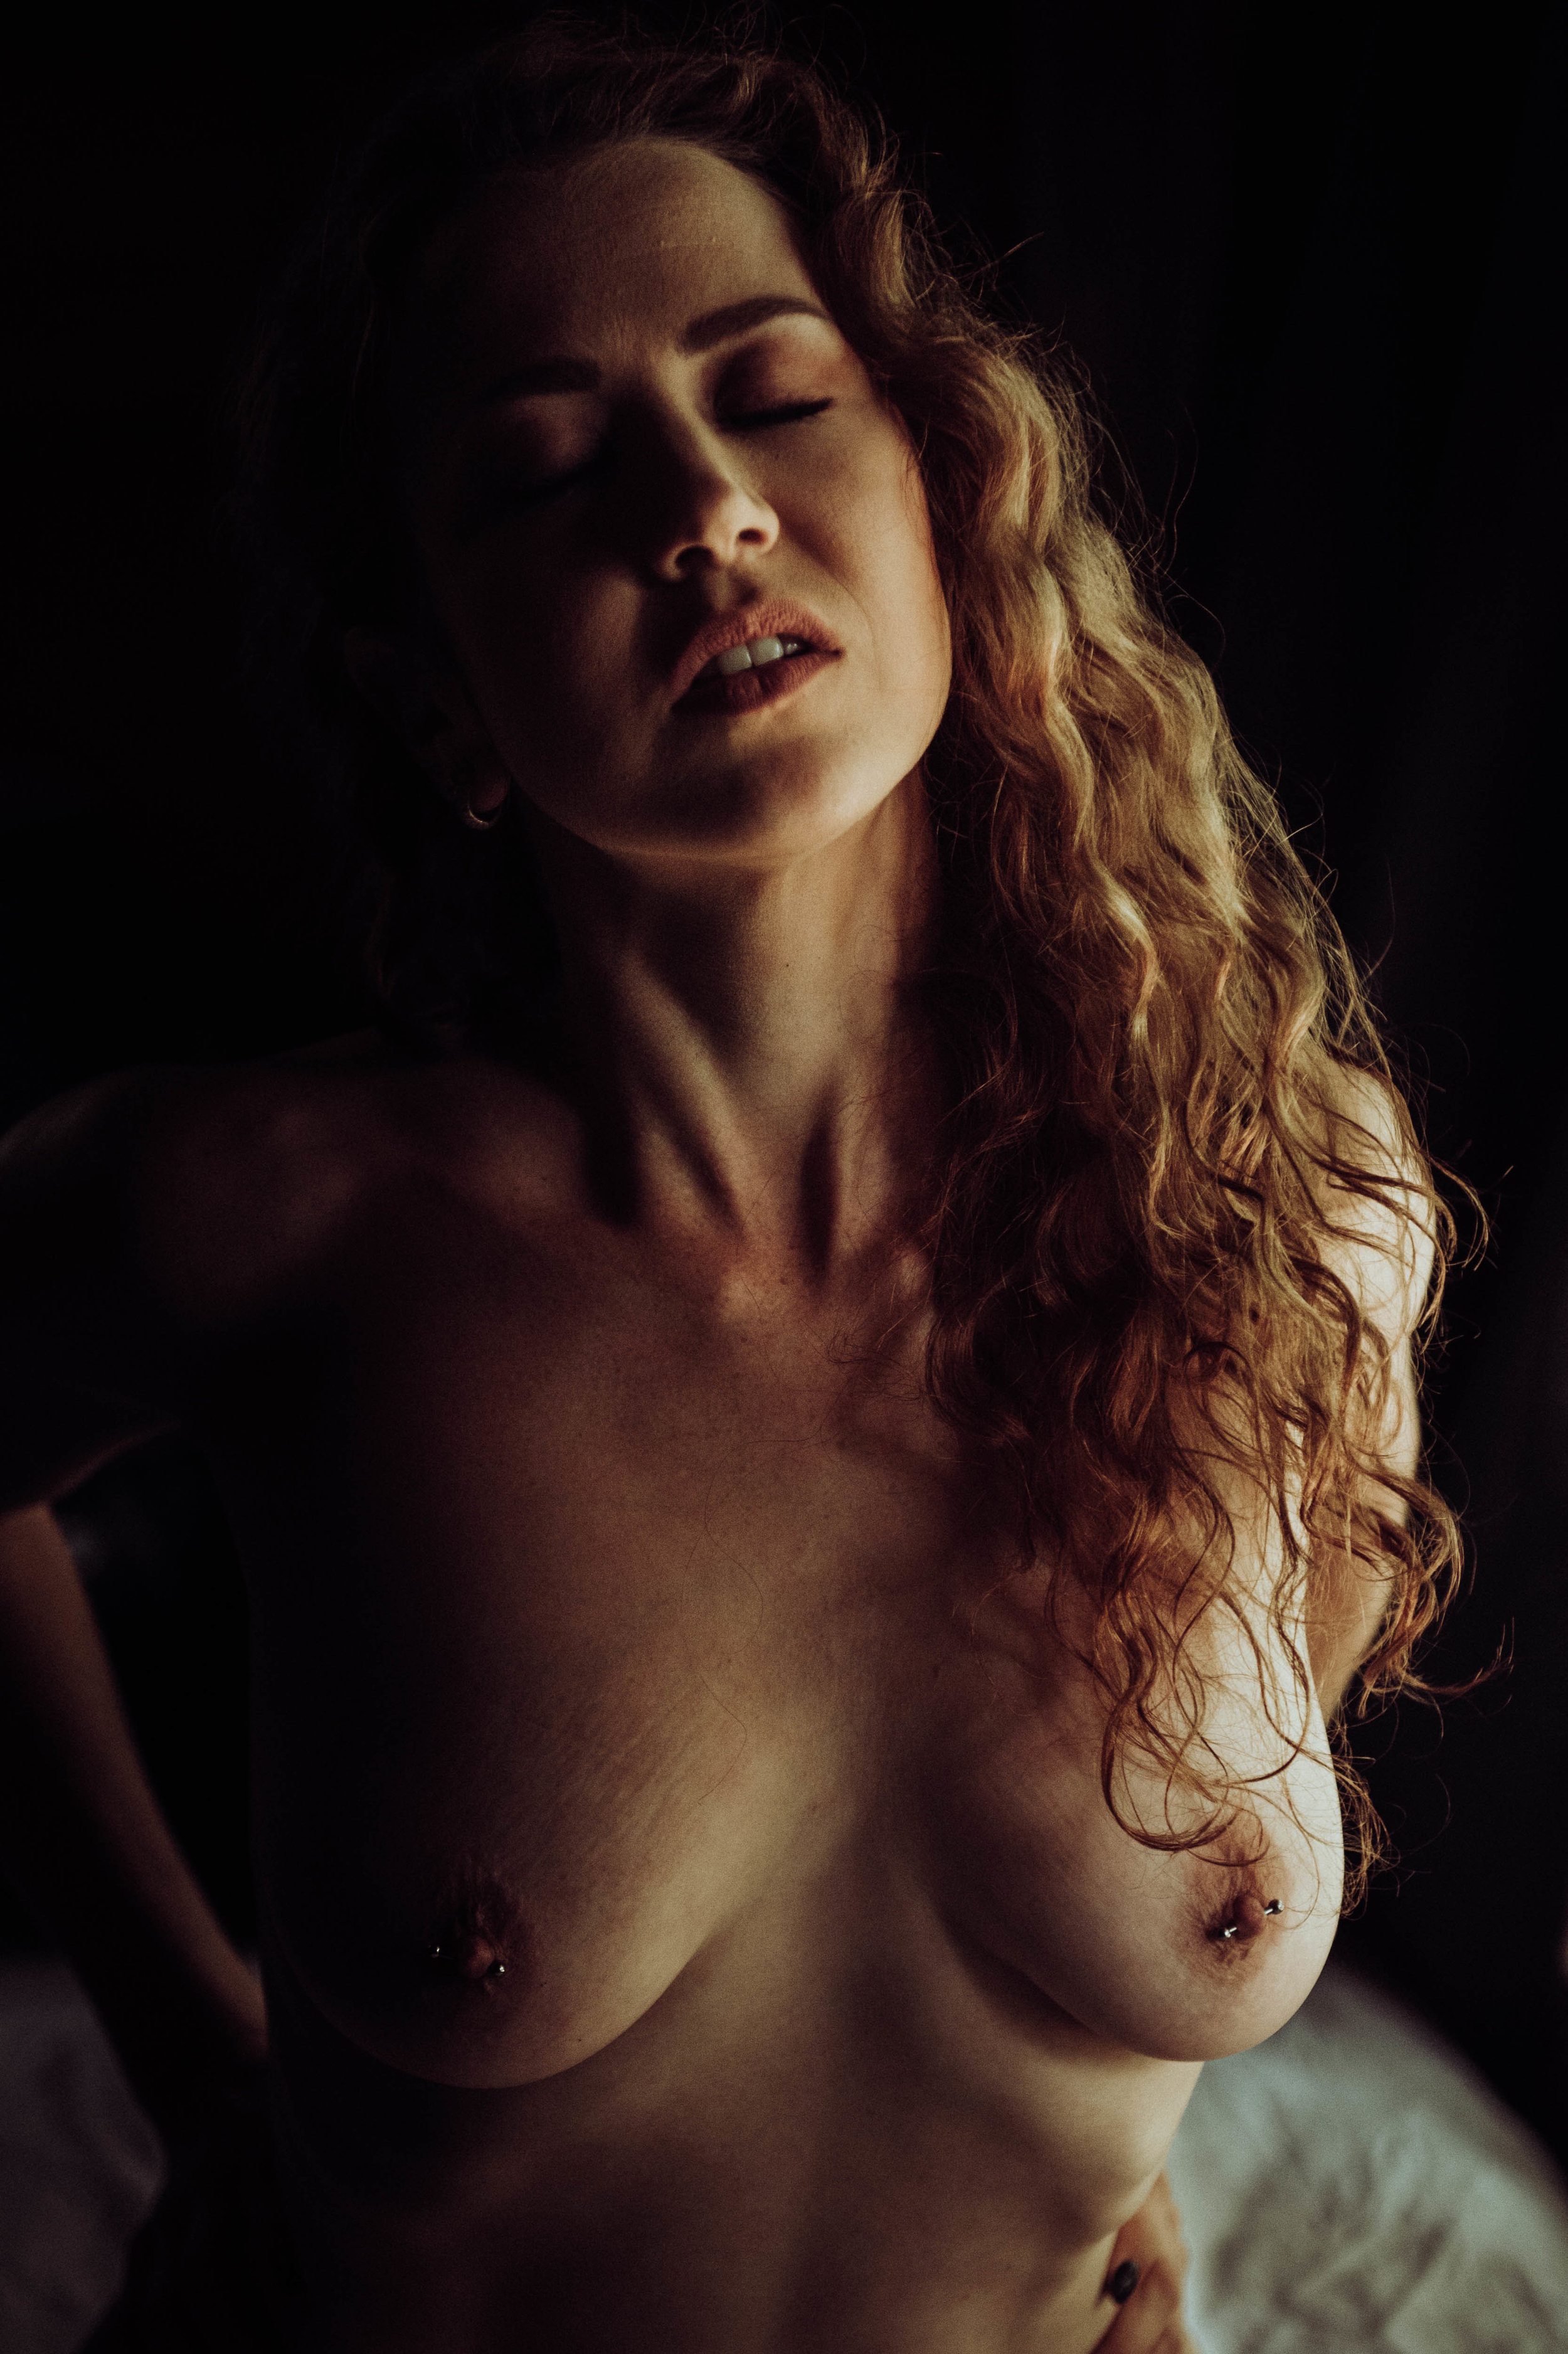 Erotic nude photography Taylor Oakes Boudoir photography New York Studio